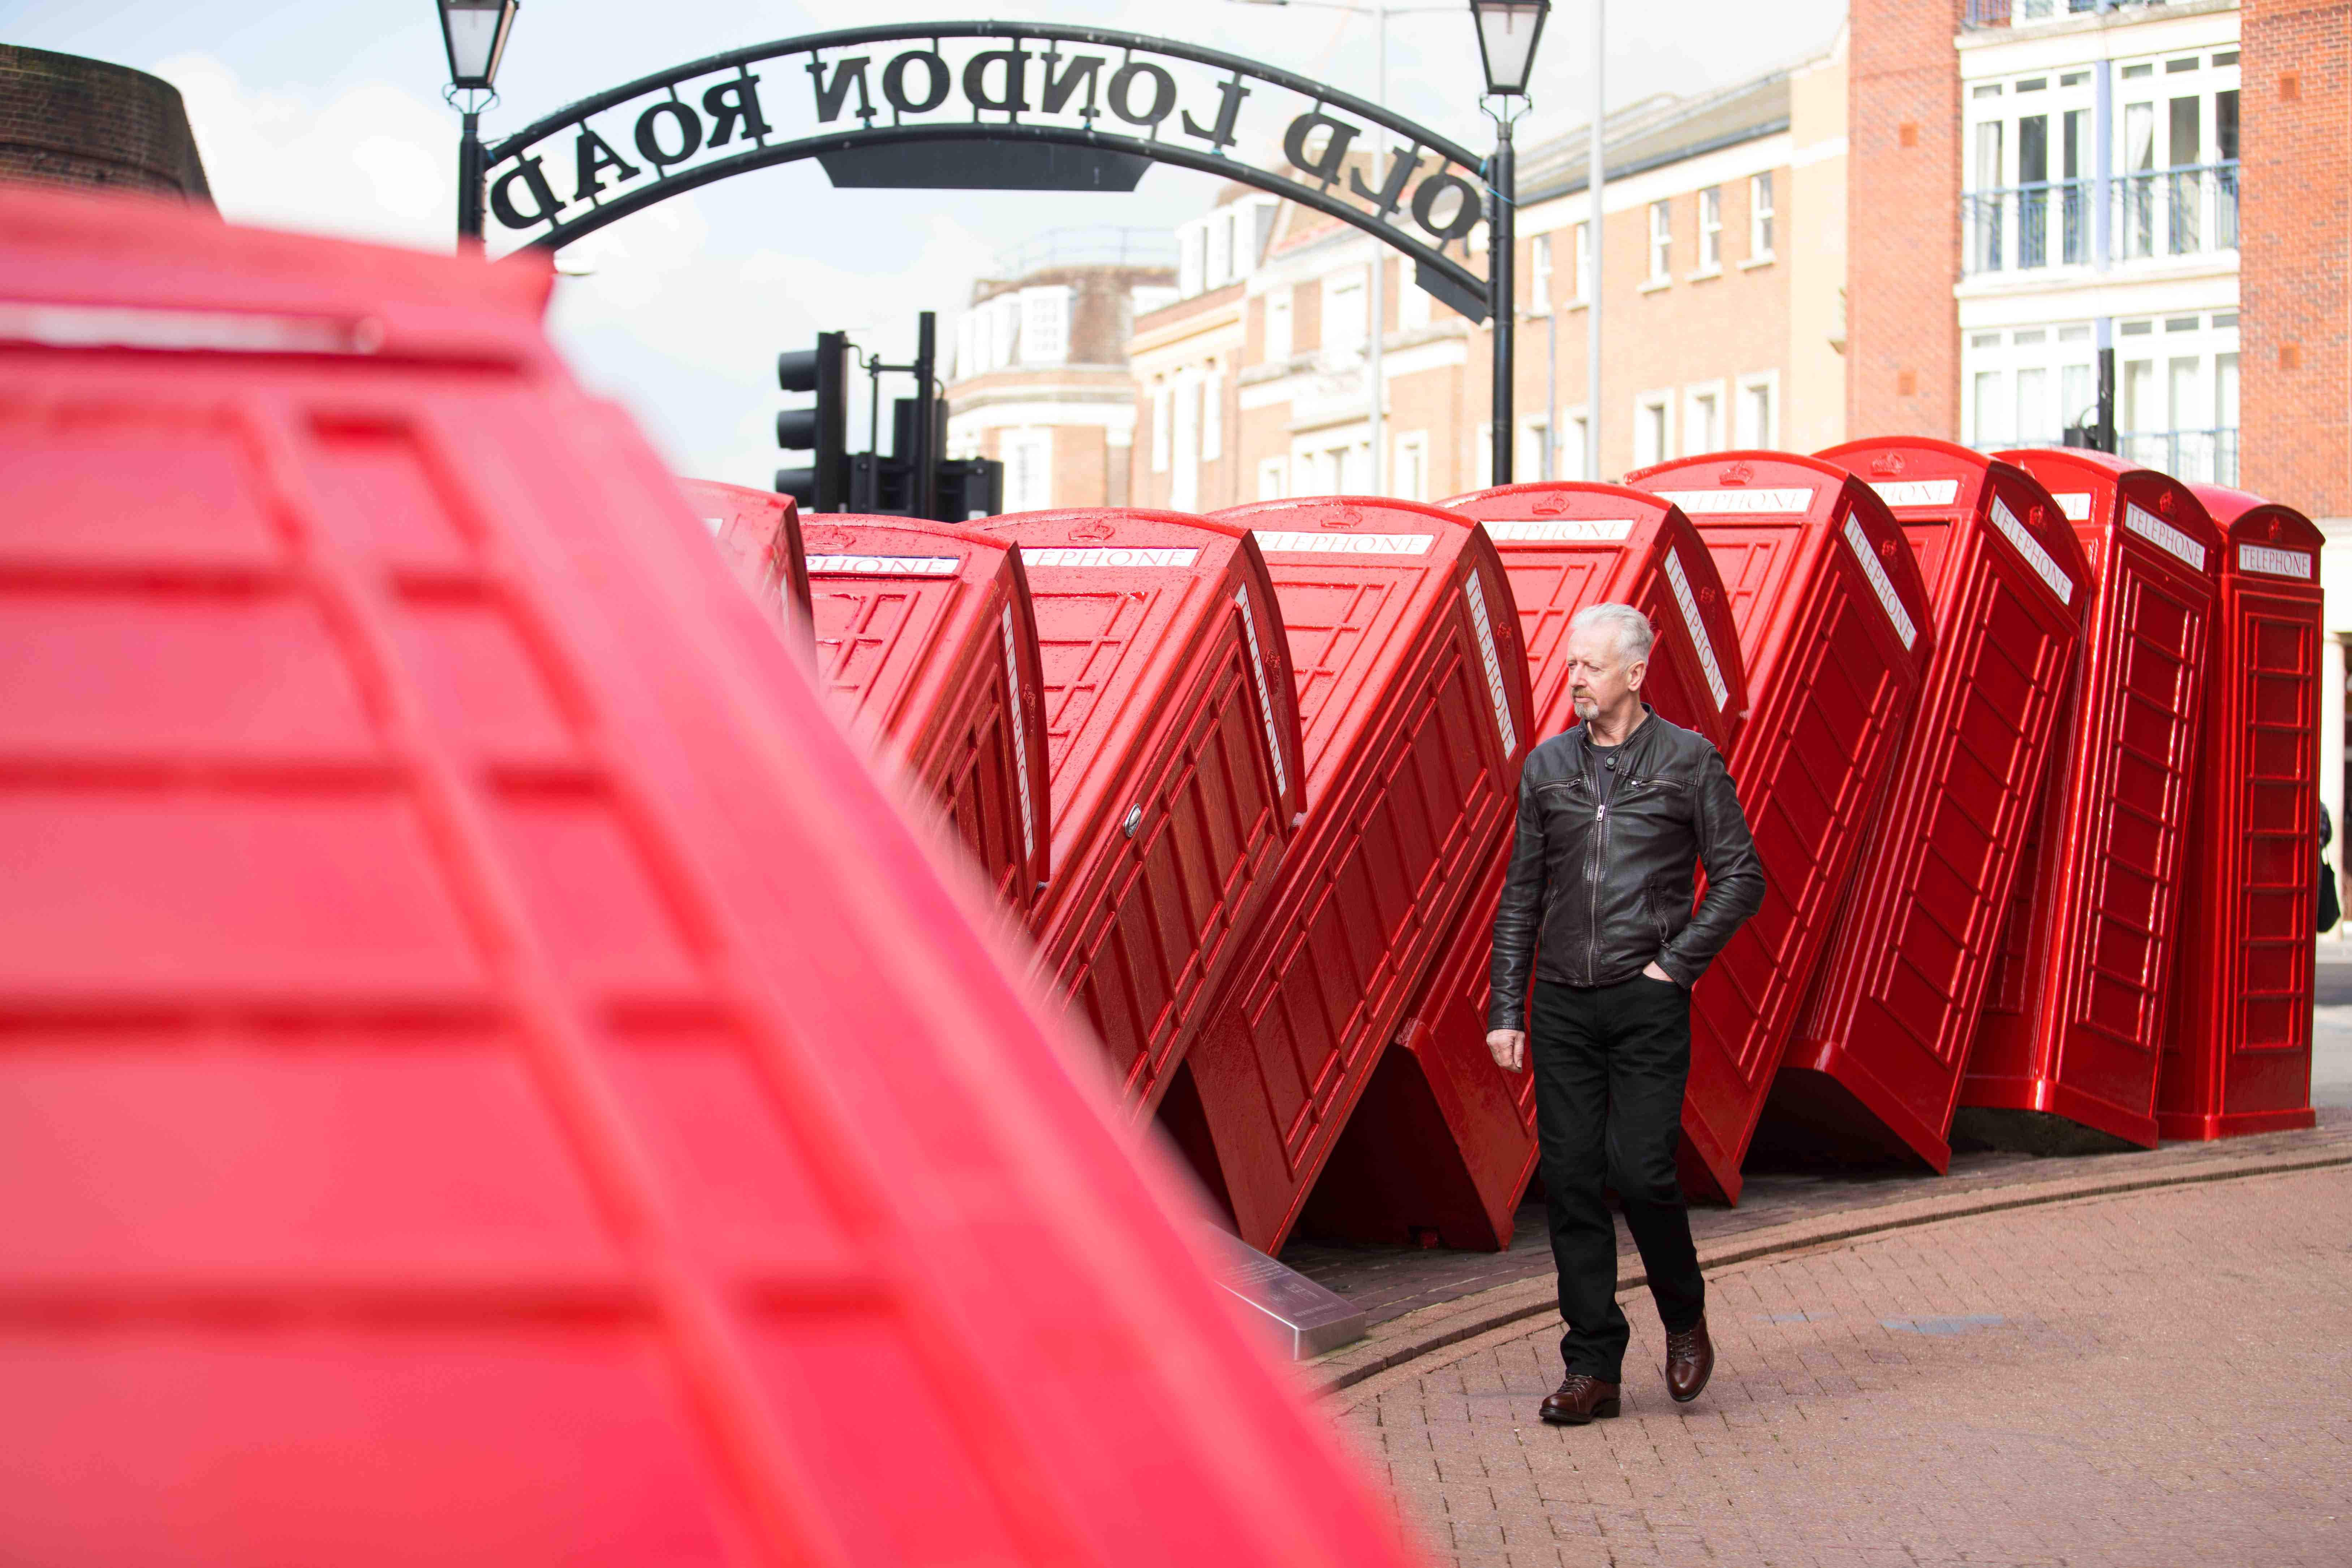 London's iconic tumbling telephone boxes sculpture has been refurbished